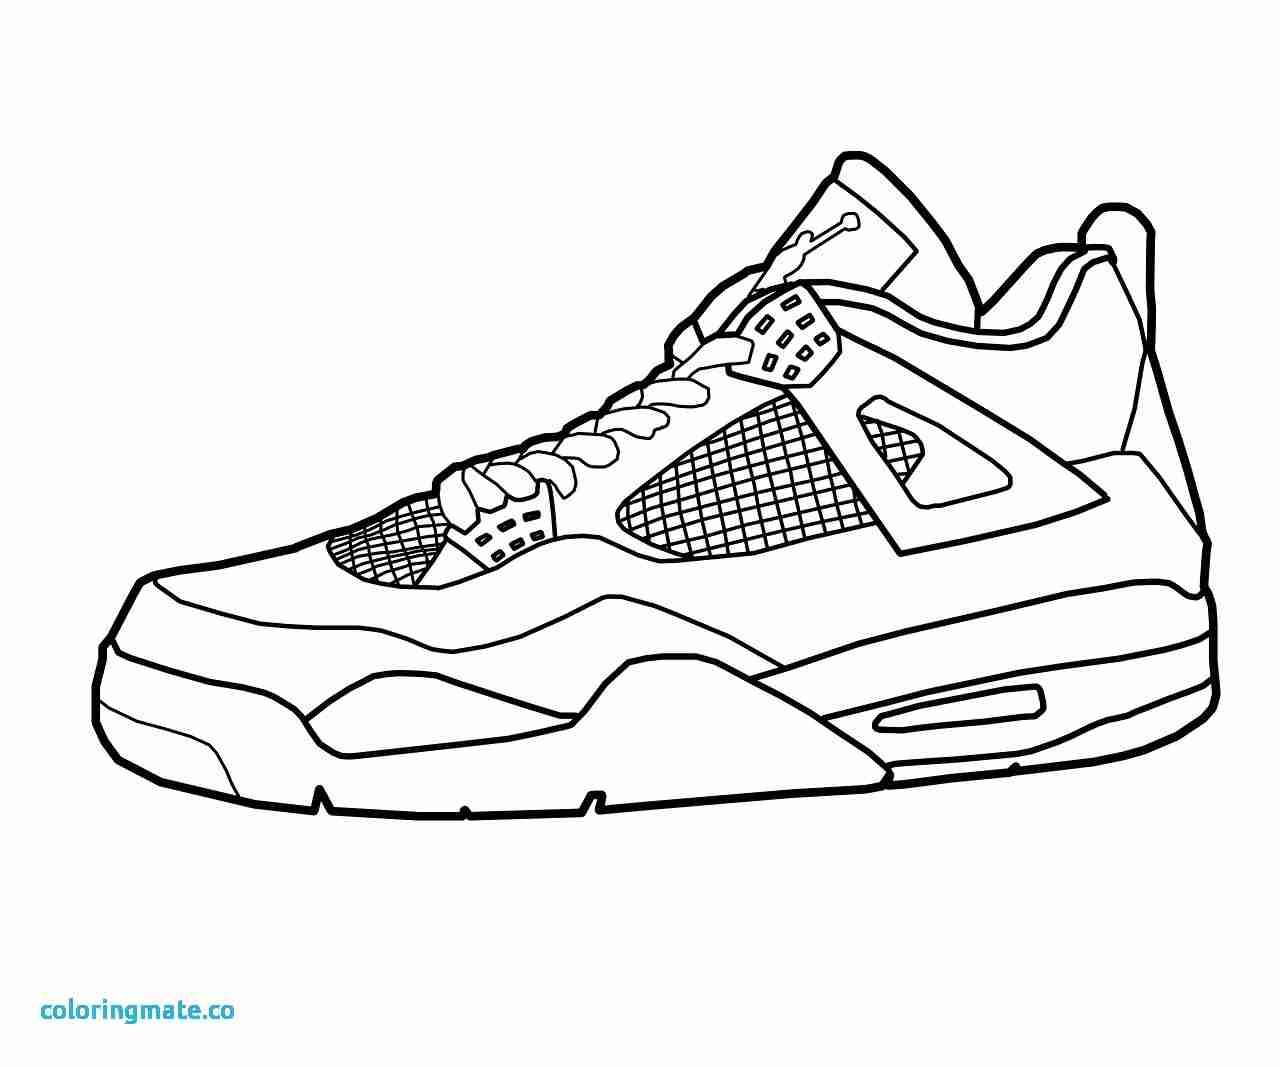 1280x1067 Shoe Coloring Page Best Of Free Nike Air Outline Pages Adorable